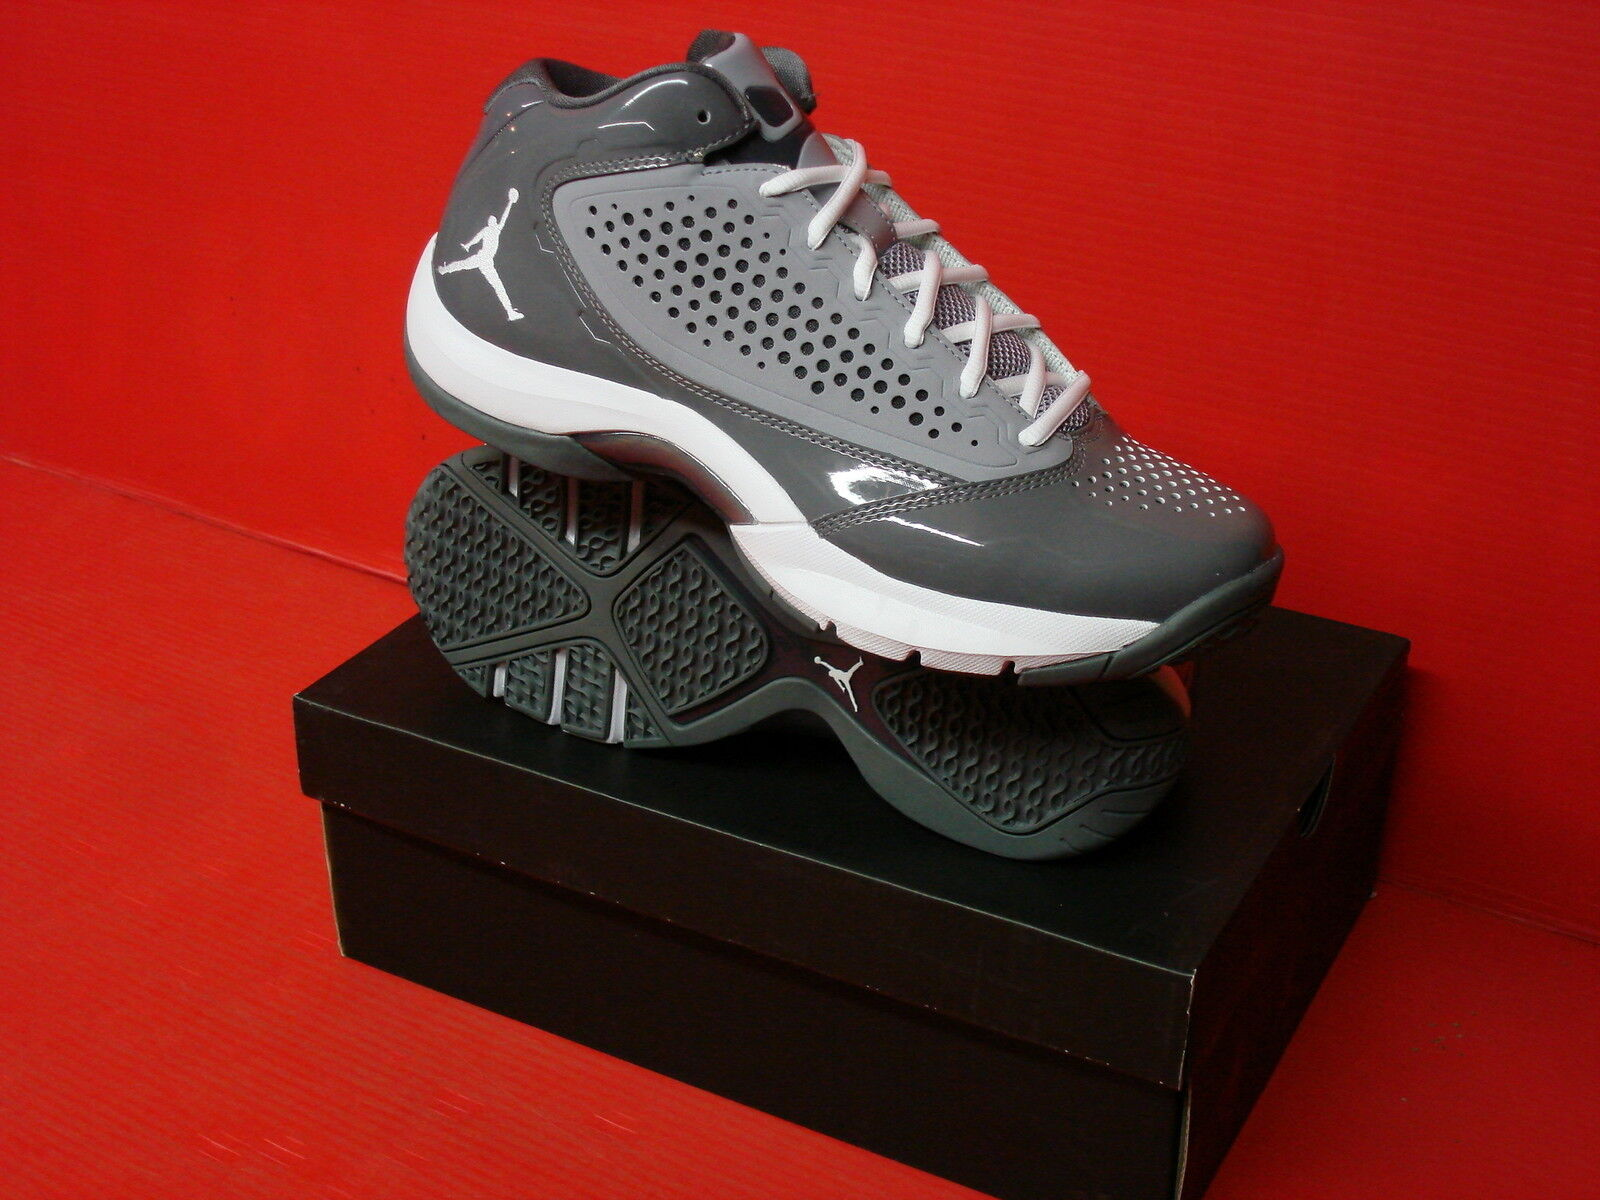 NIKE JORDAN D'REIGN MENS BASKETBALL STYLE 510859 Comfortable and good-looking